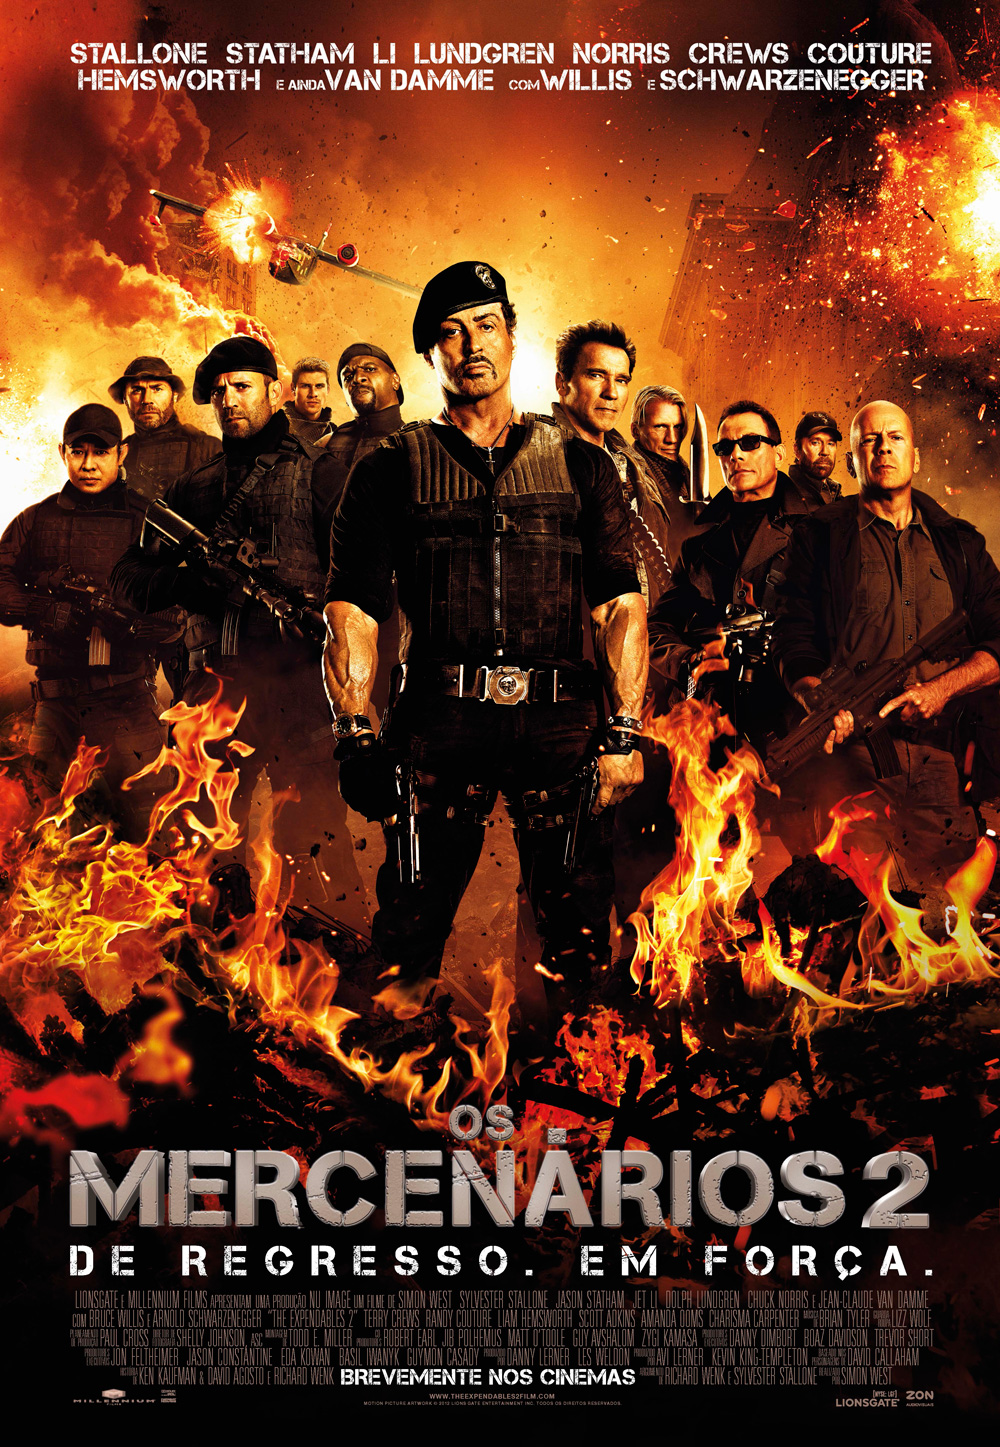 Os Mercenários 2 BDRip XviD Dual Áudio Dublado – Torrent